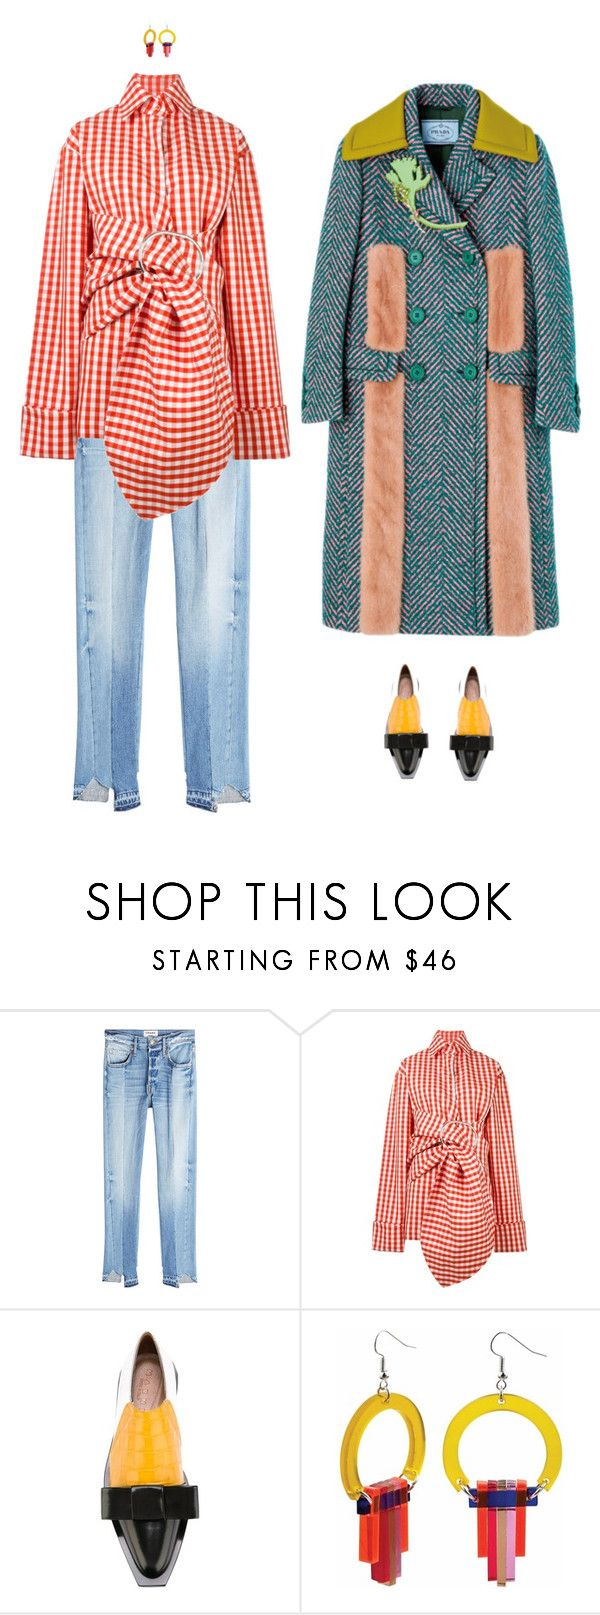 """""""Paula"""" by sandrastories ❤ liked on Polyvore featuring Frame, Marques'Almeida, Marni and Toolally"""